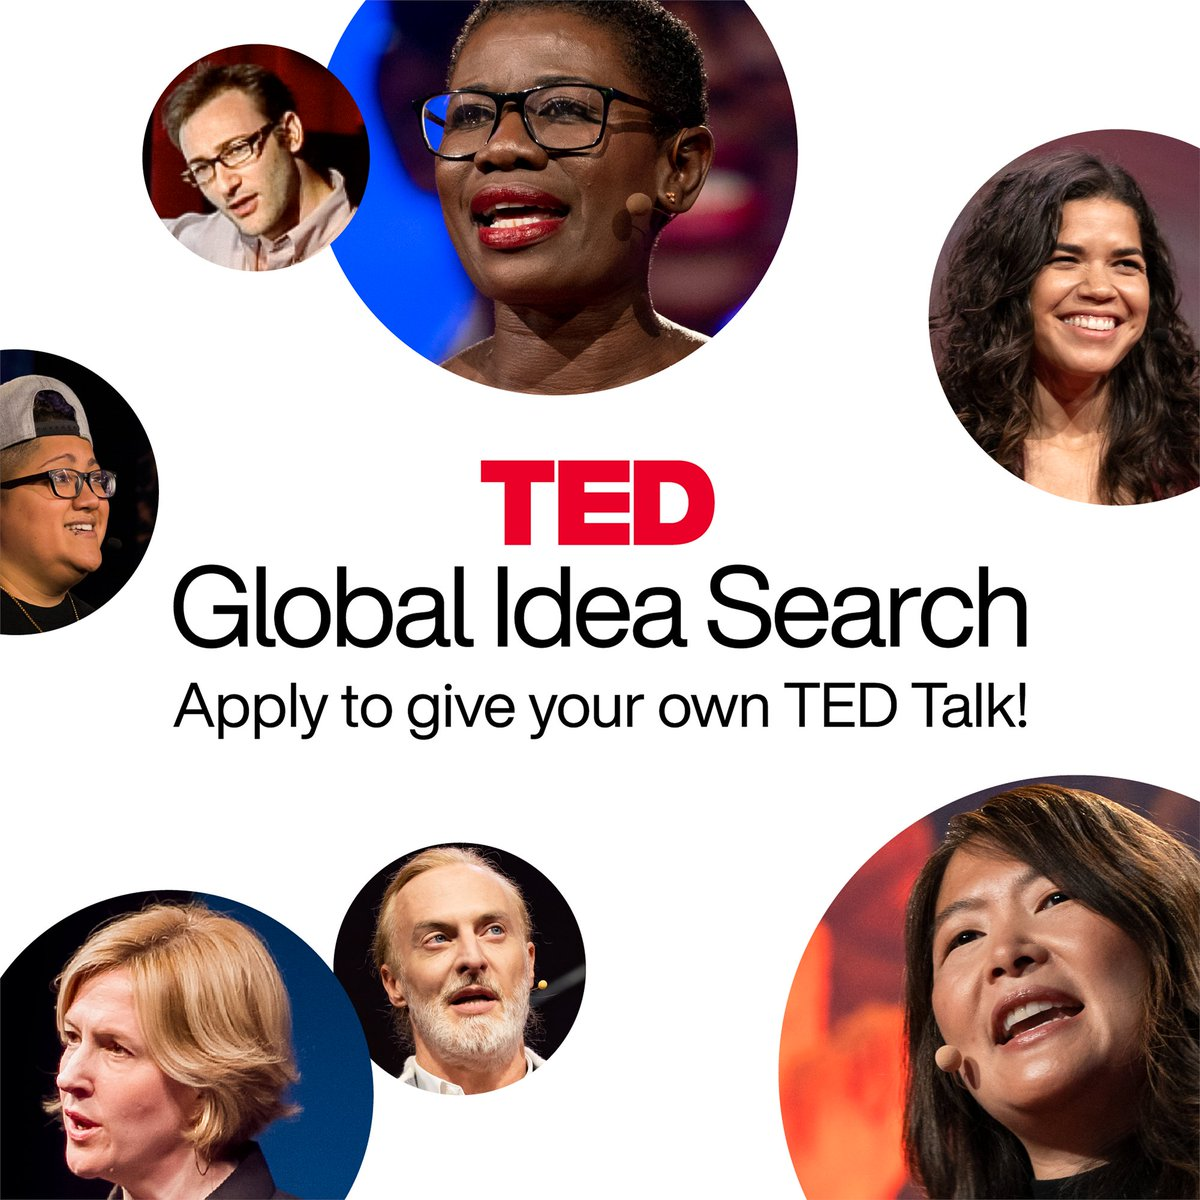 Have you wanted to give a TED Talk? This could be your chance to make your ideas heard!  Applications are open until Jan. 21 for our Global Idea Search. Get started: https://t.co/5p0SsYiOup https://t.co/6MRnyU9hC2